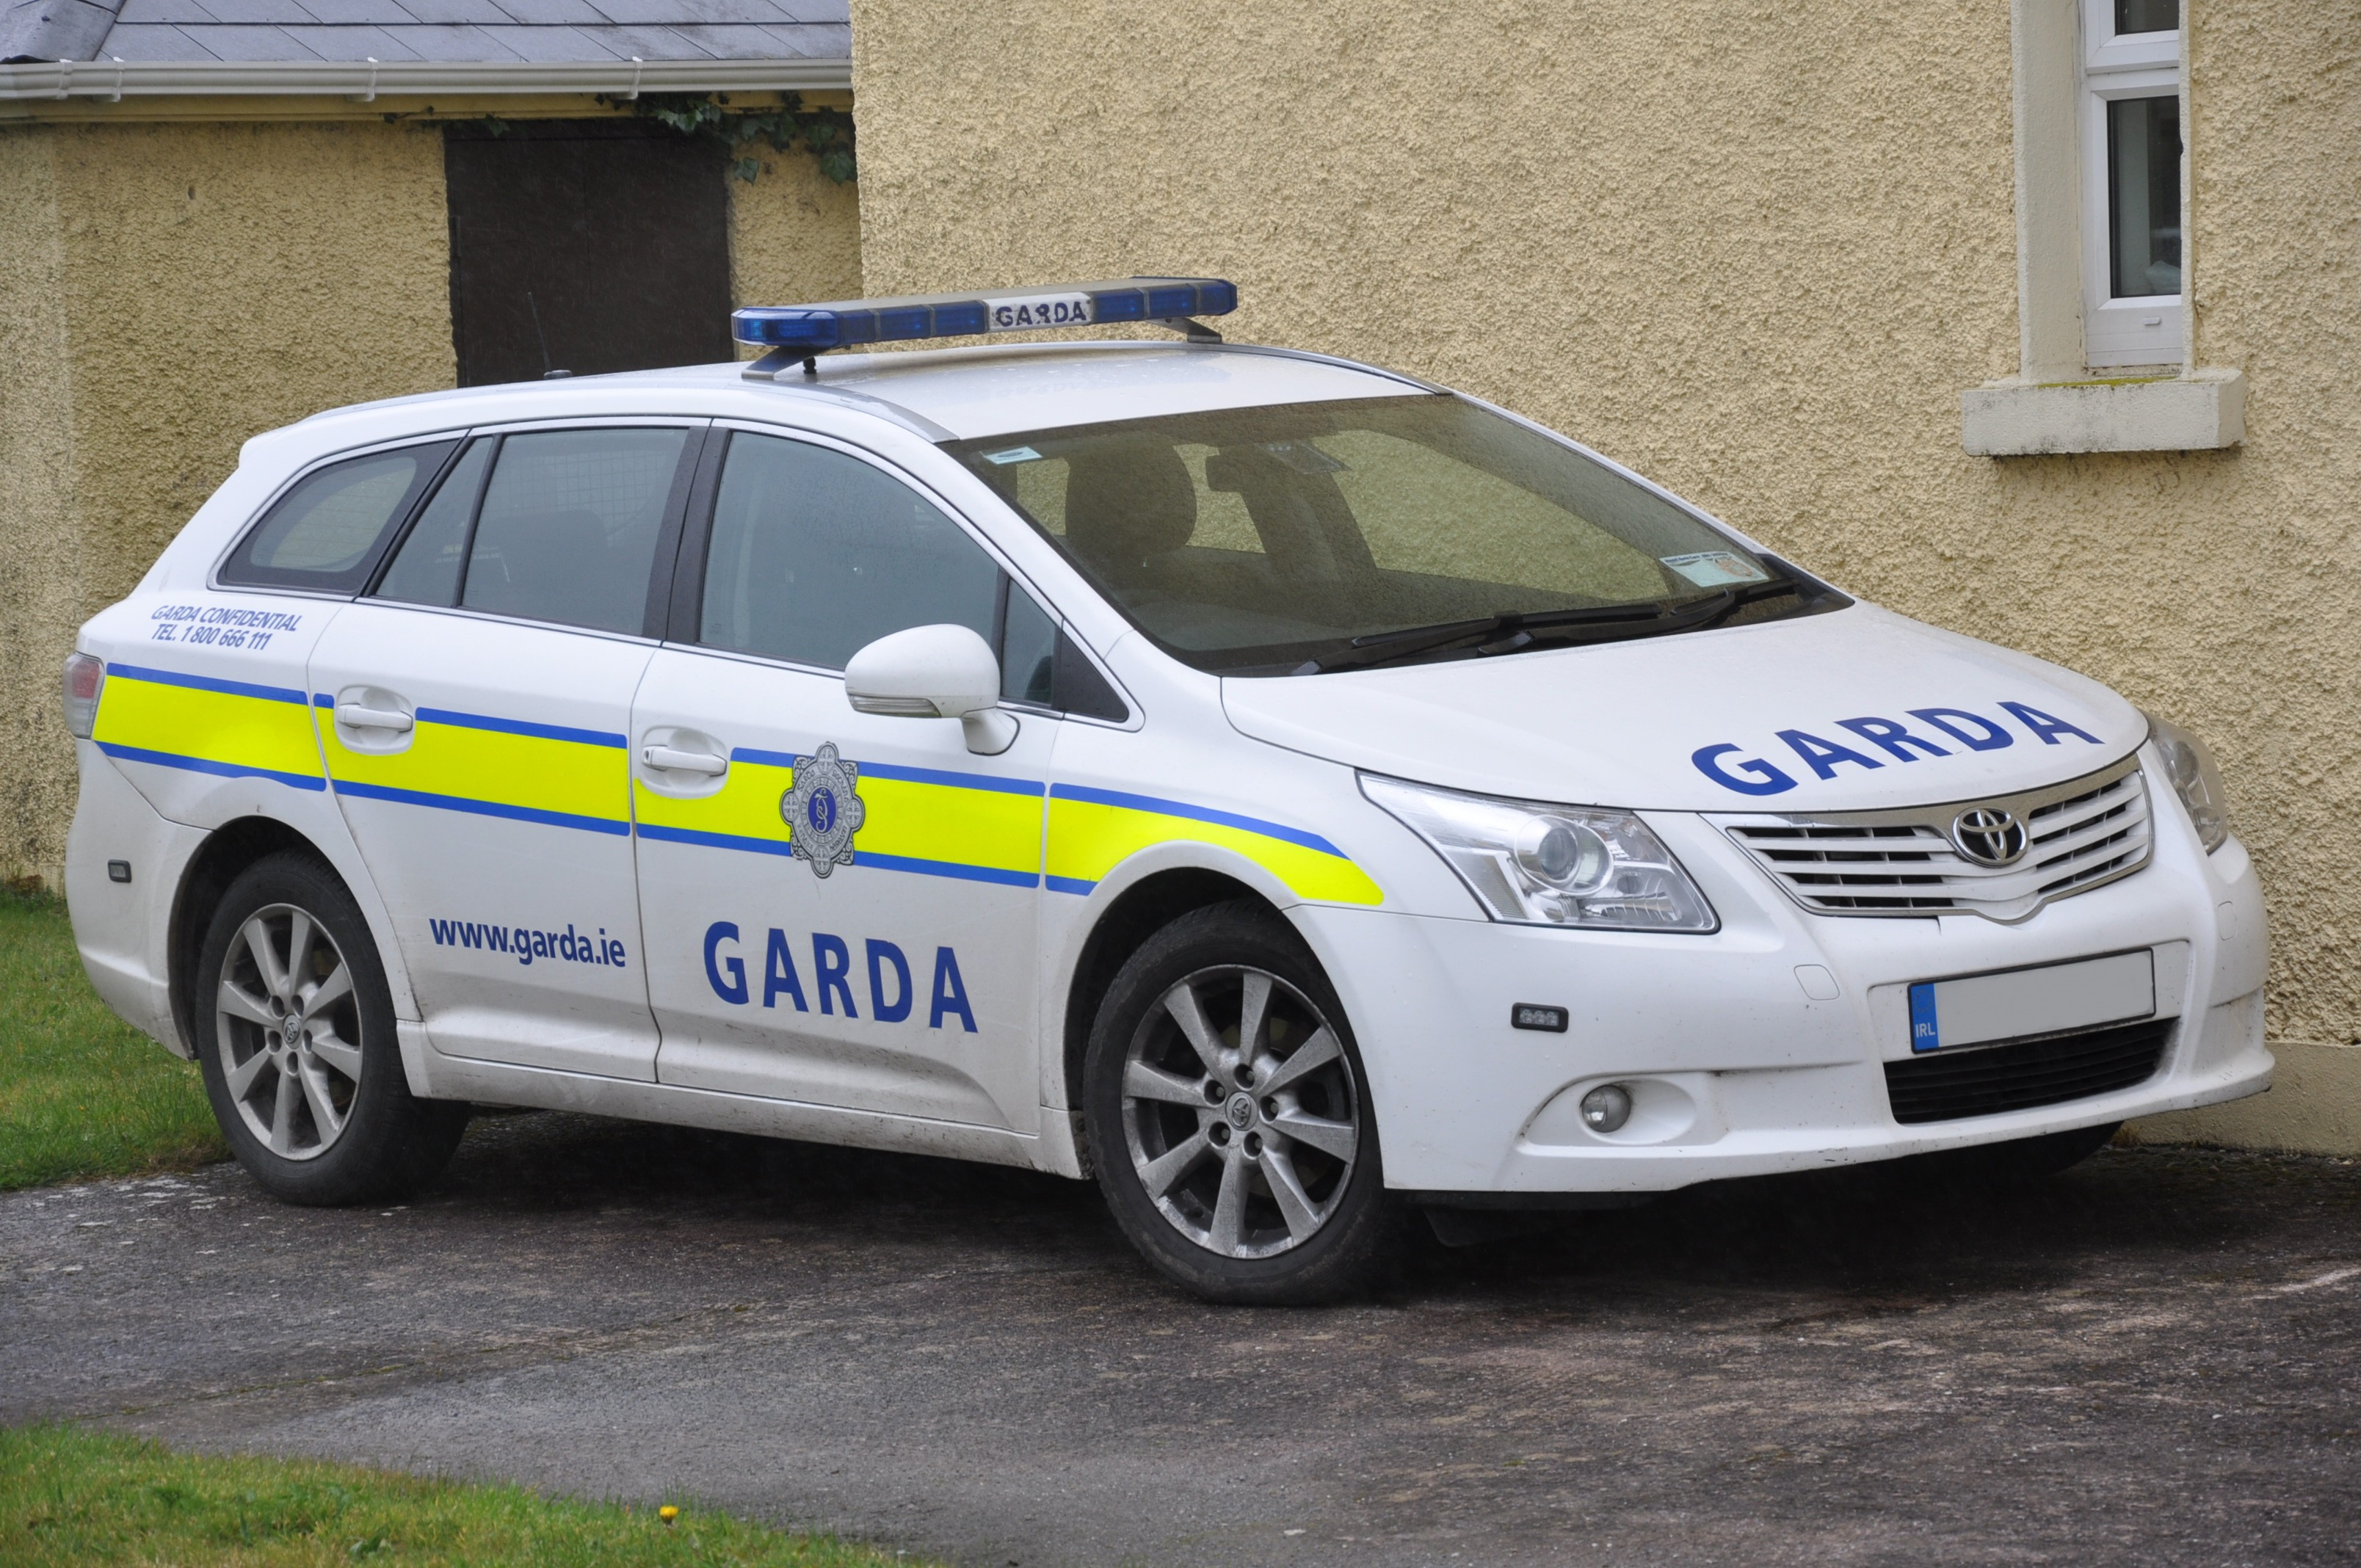 Garda stations 'lost in a black hole' with lack of internet